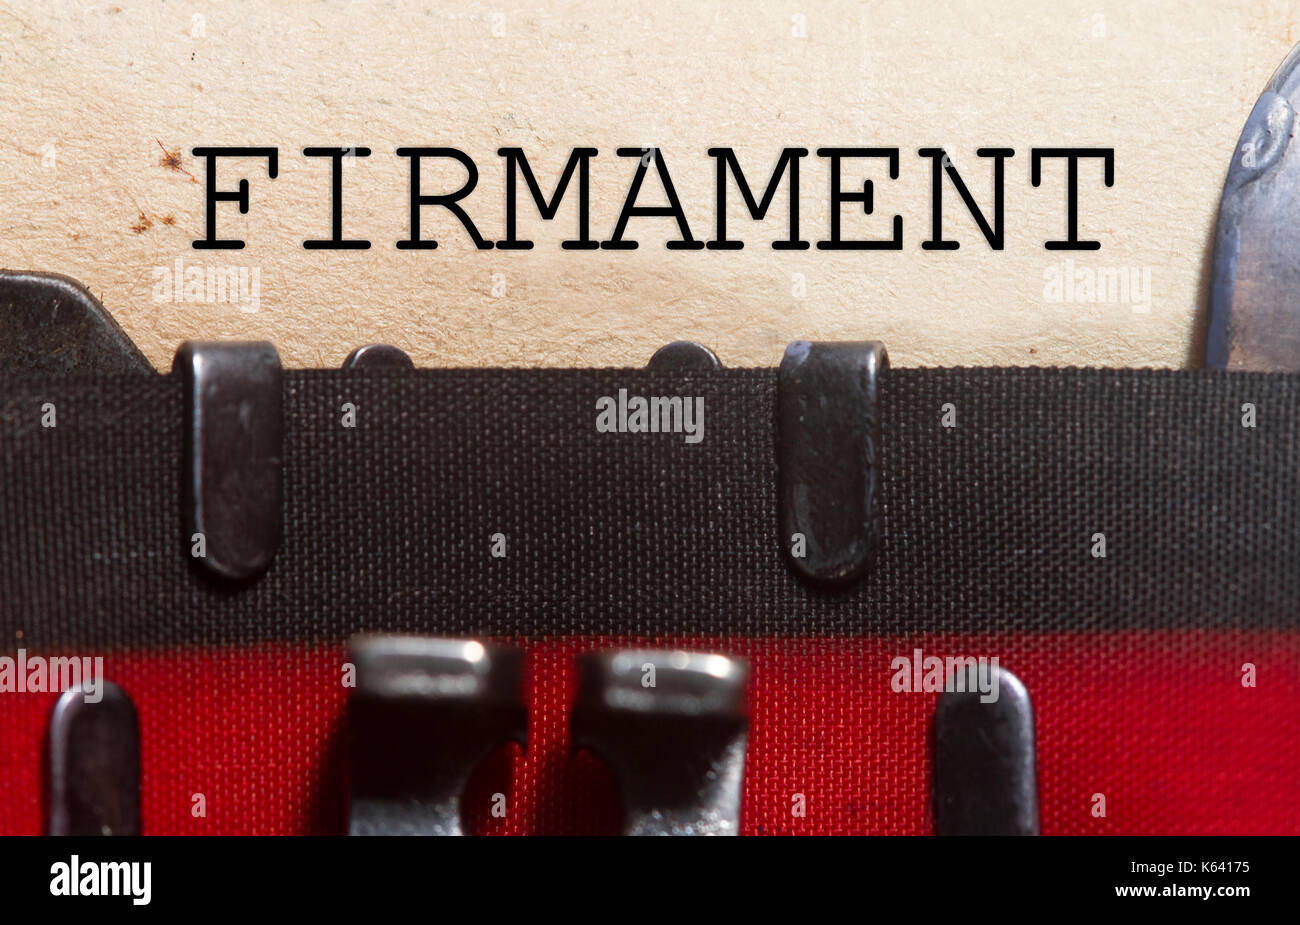 Firmament  typed on an old vintage paper with od typewriter font. - Stock Image